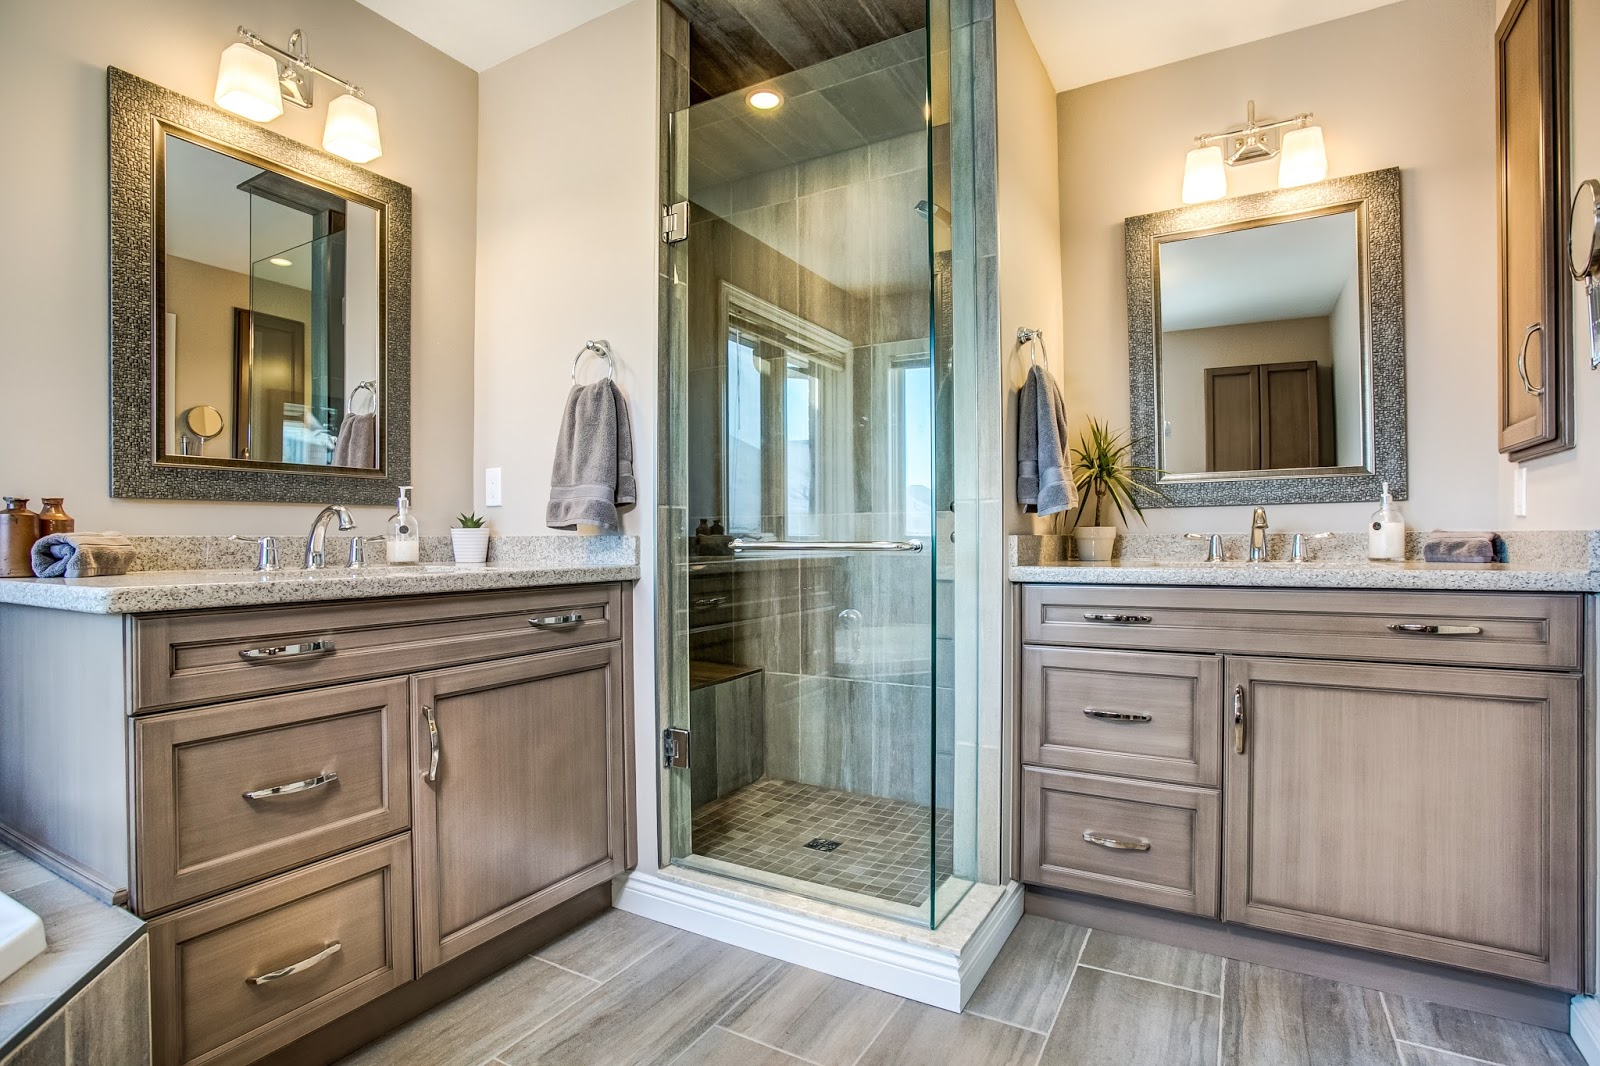 Bathroom remodel cost budget average luxury home - How much for small bathroom remodel ...